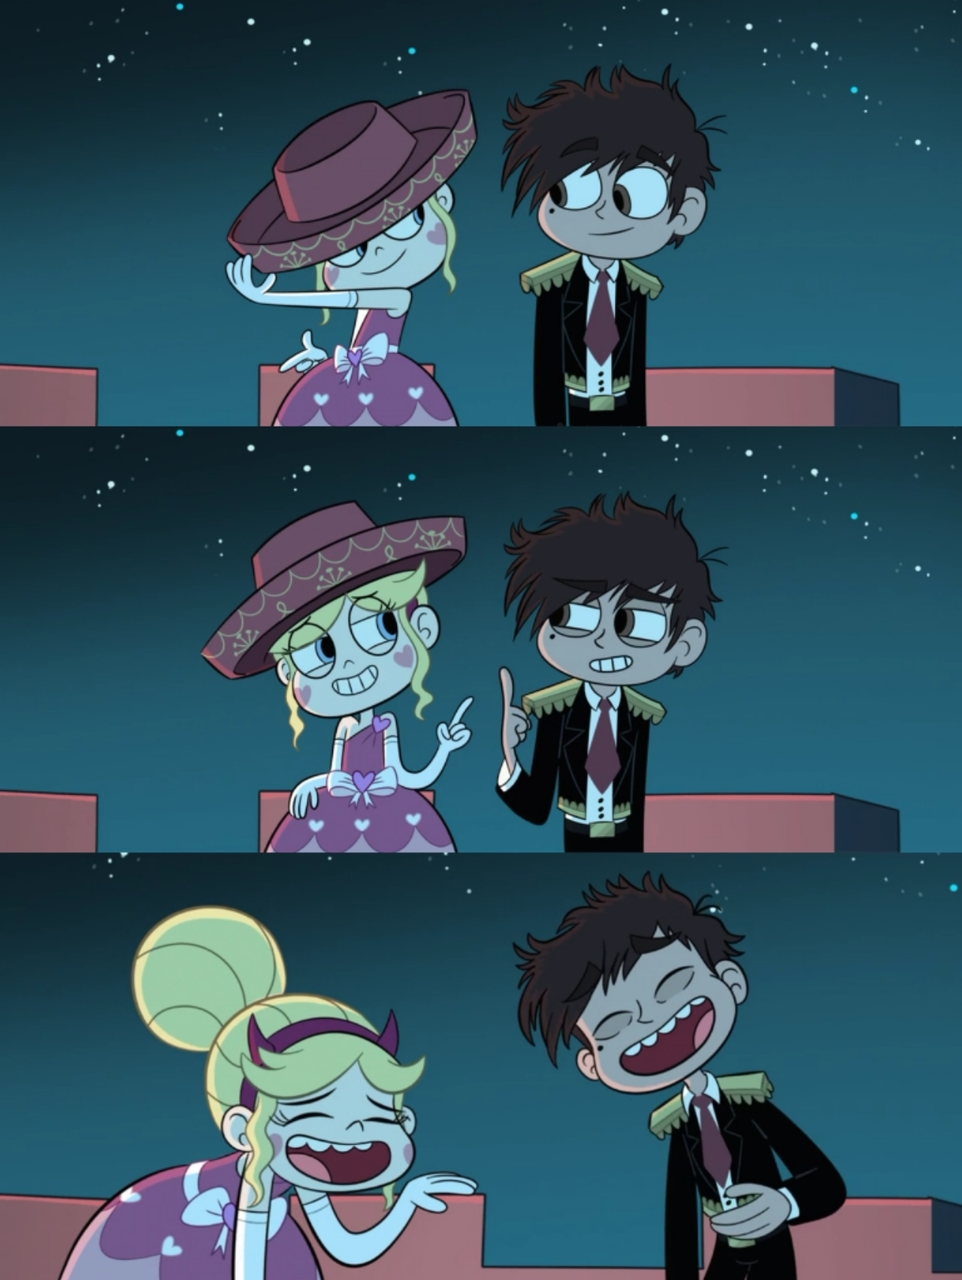 marco, starco, shipp and star butterfly